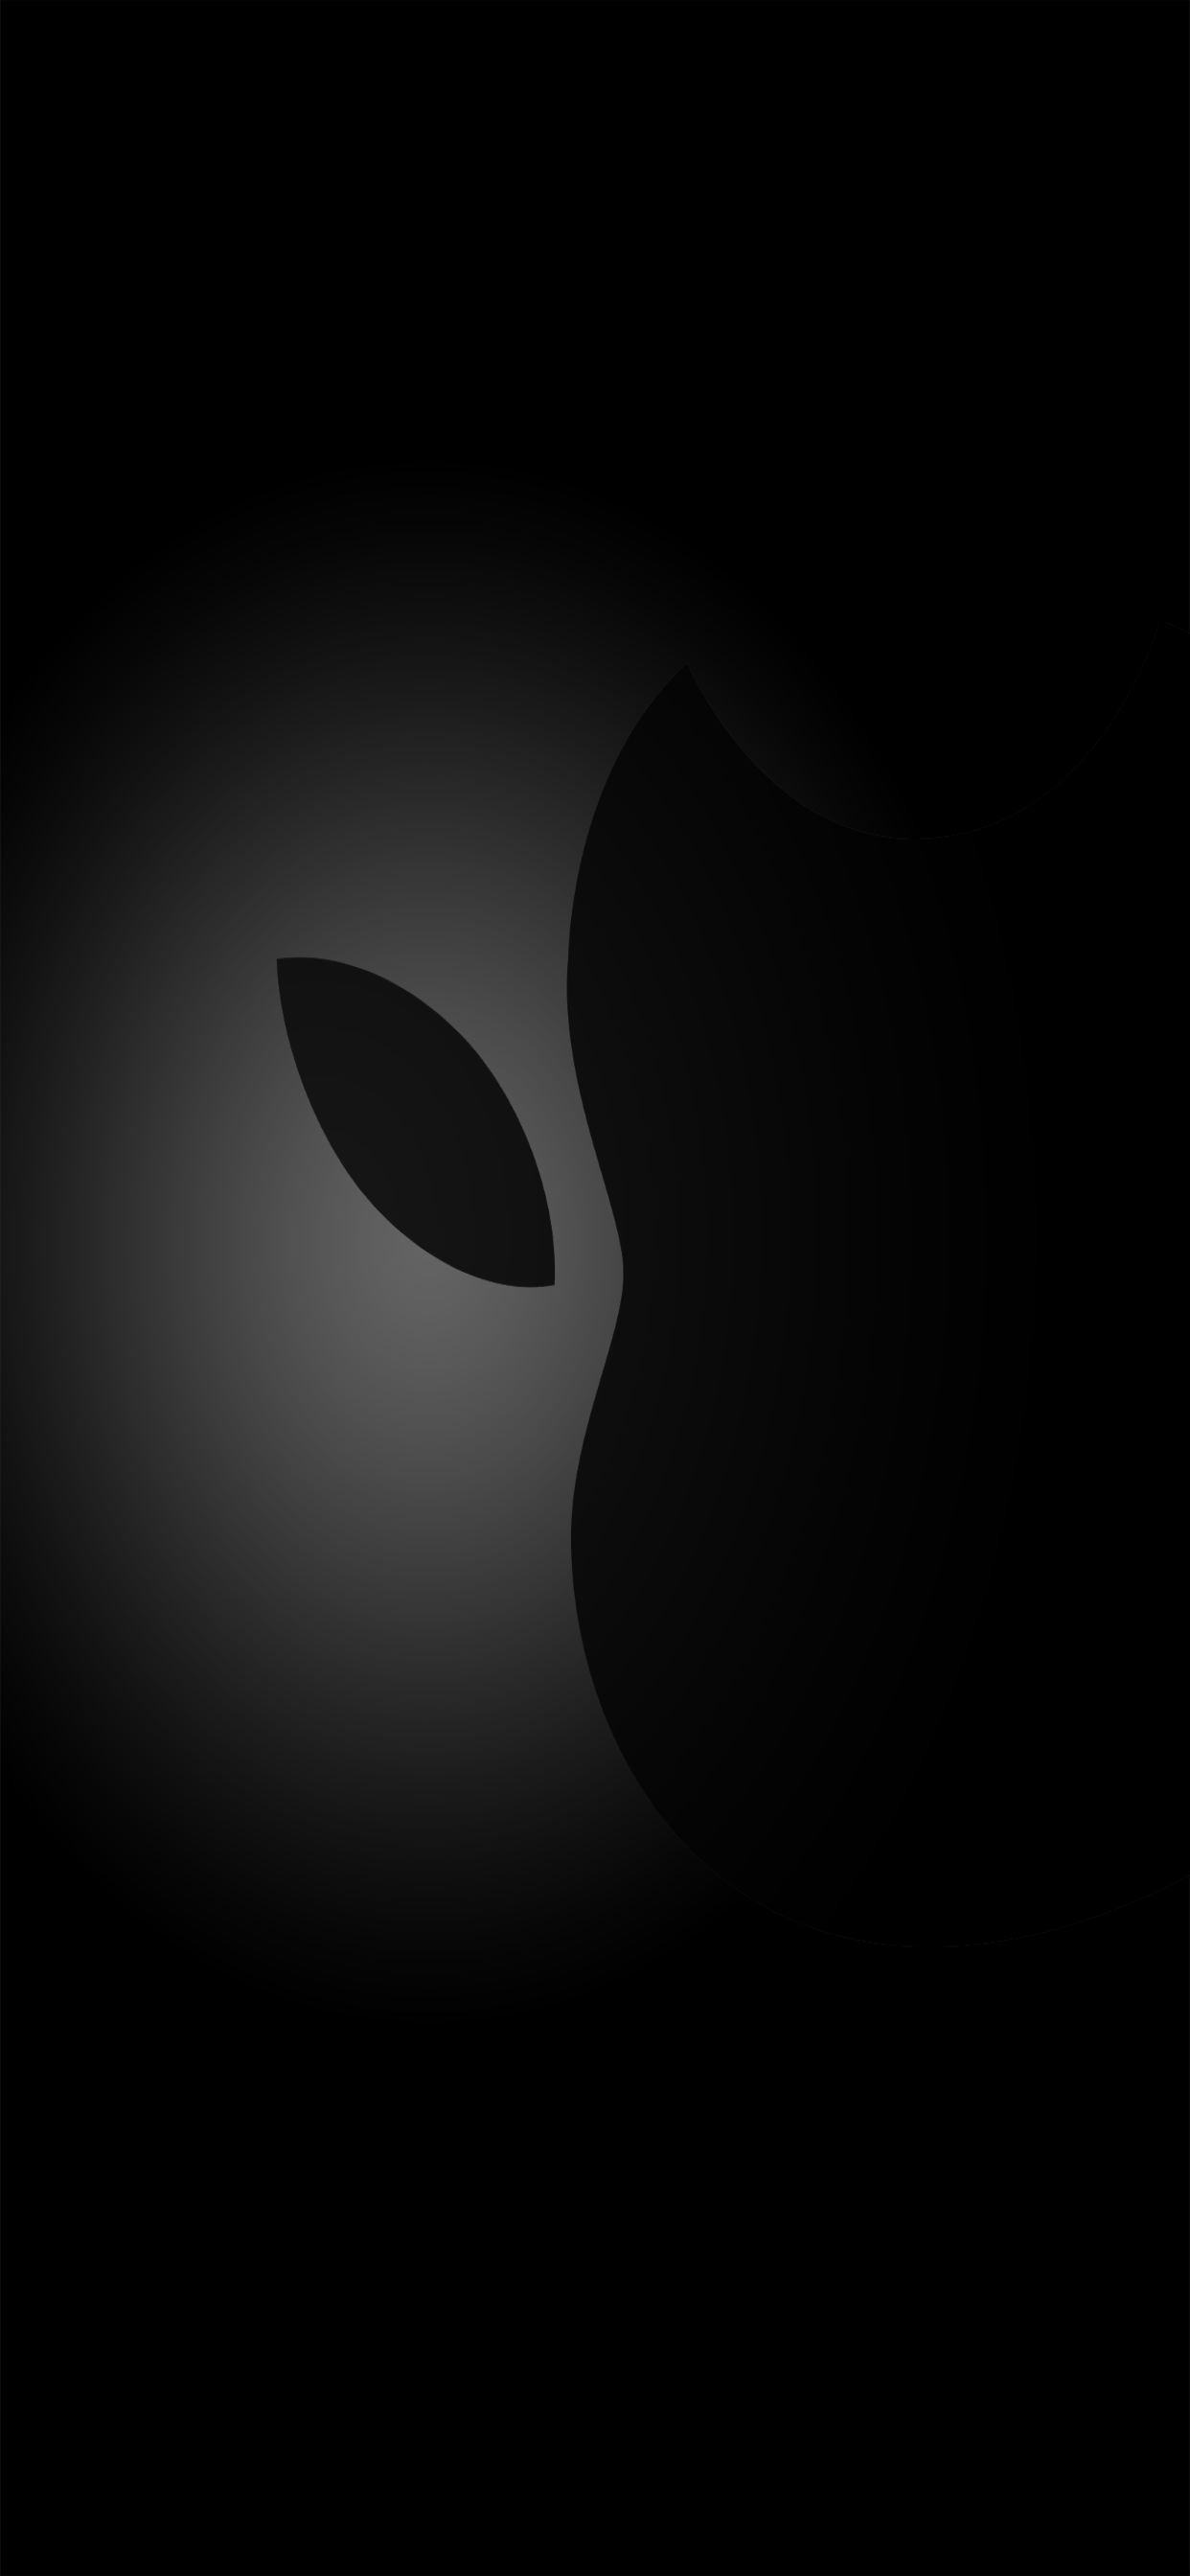 iPhone wallpaper apple event march 2019 v3 1 Fonds d'écran iPhone du 12/03/2019